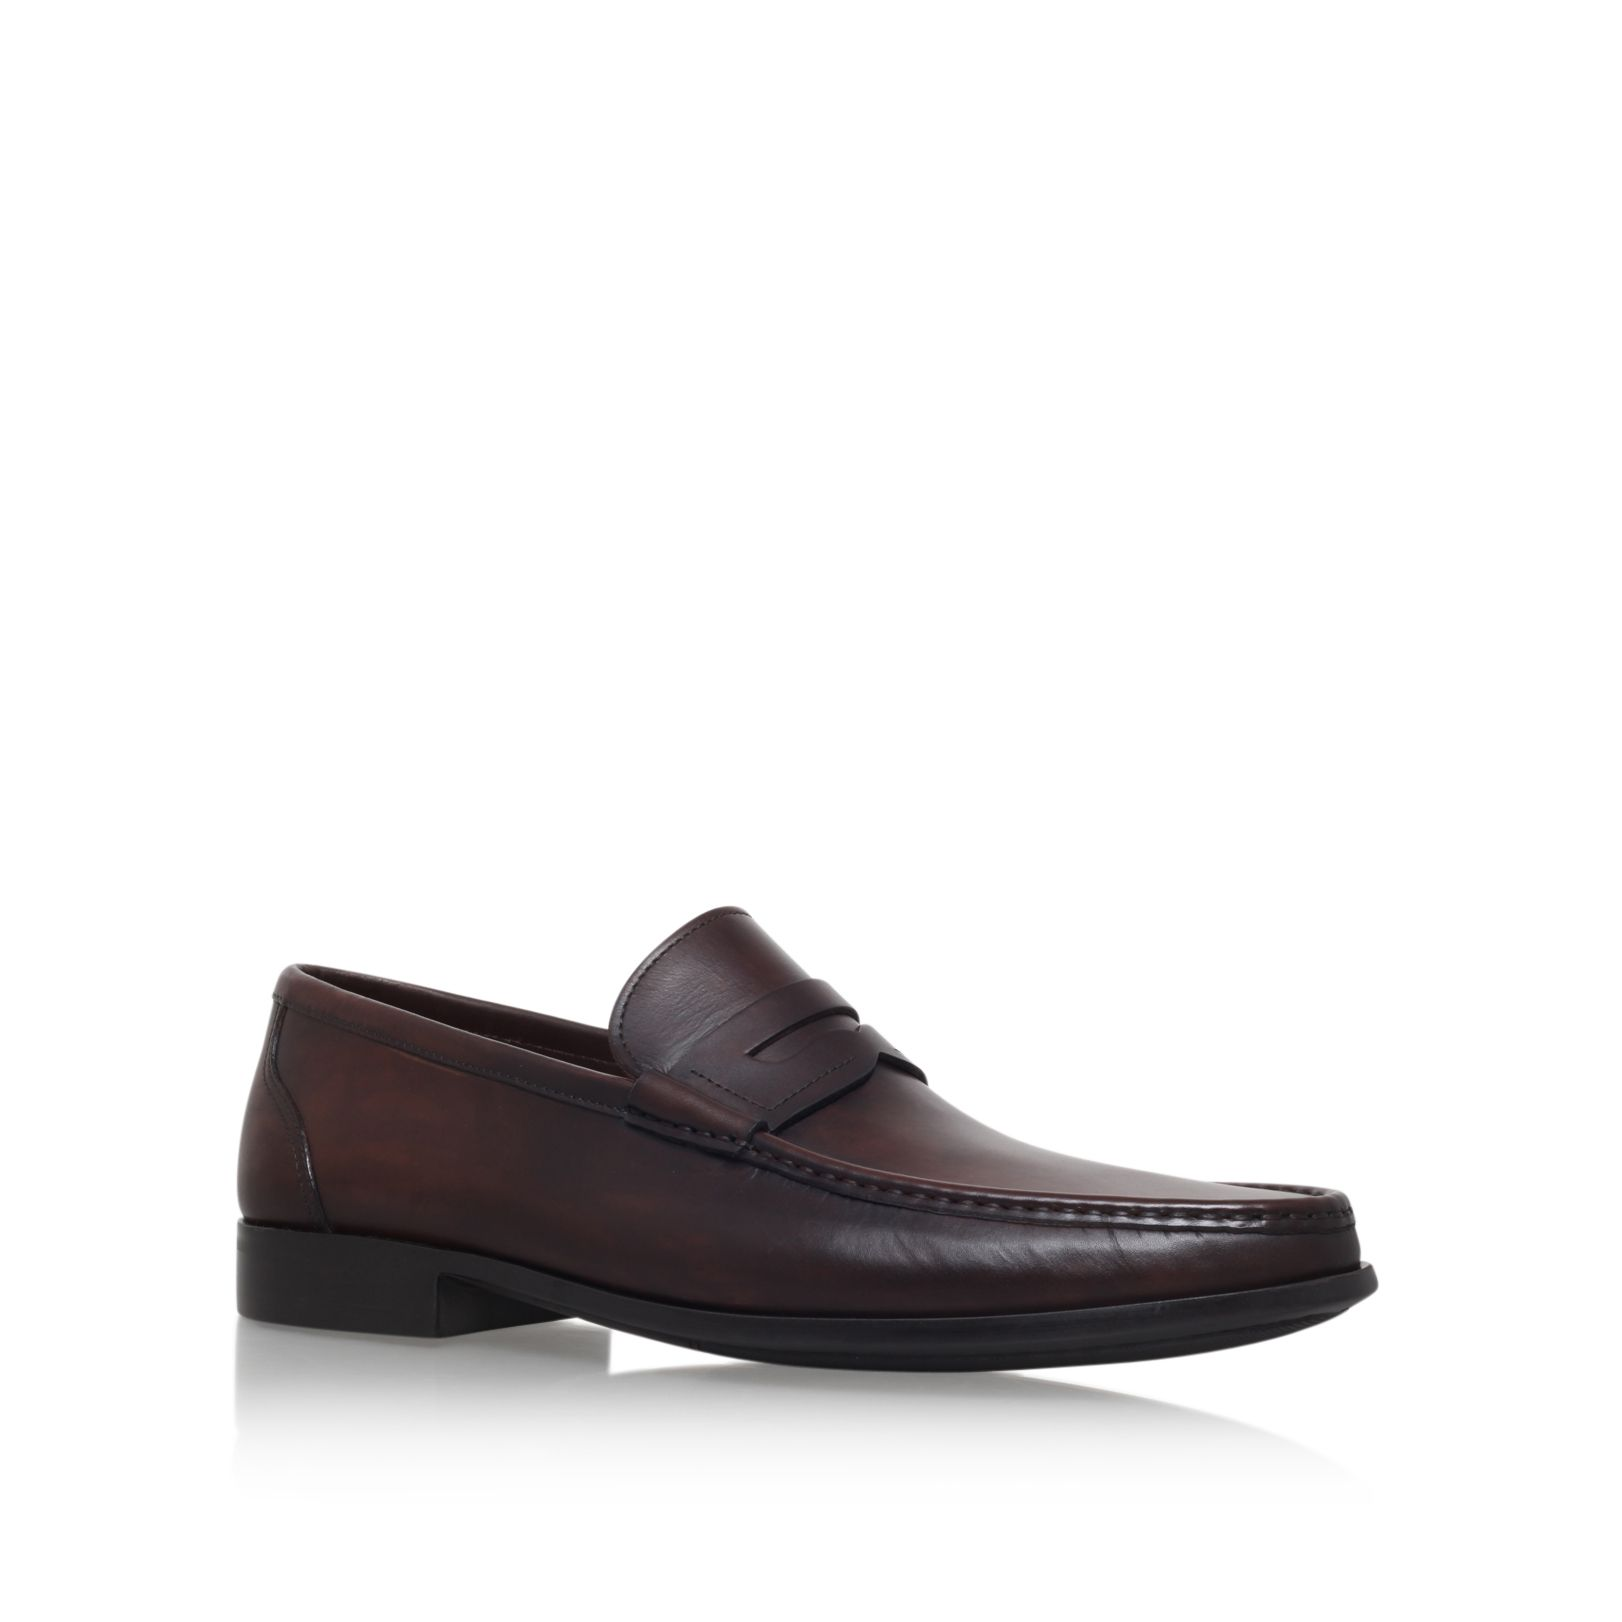 Magnanni Magnanni Penny Loafer Brown Flat Shoes, Brown